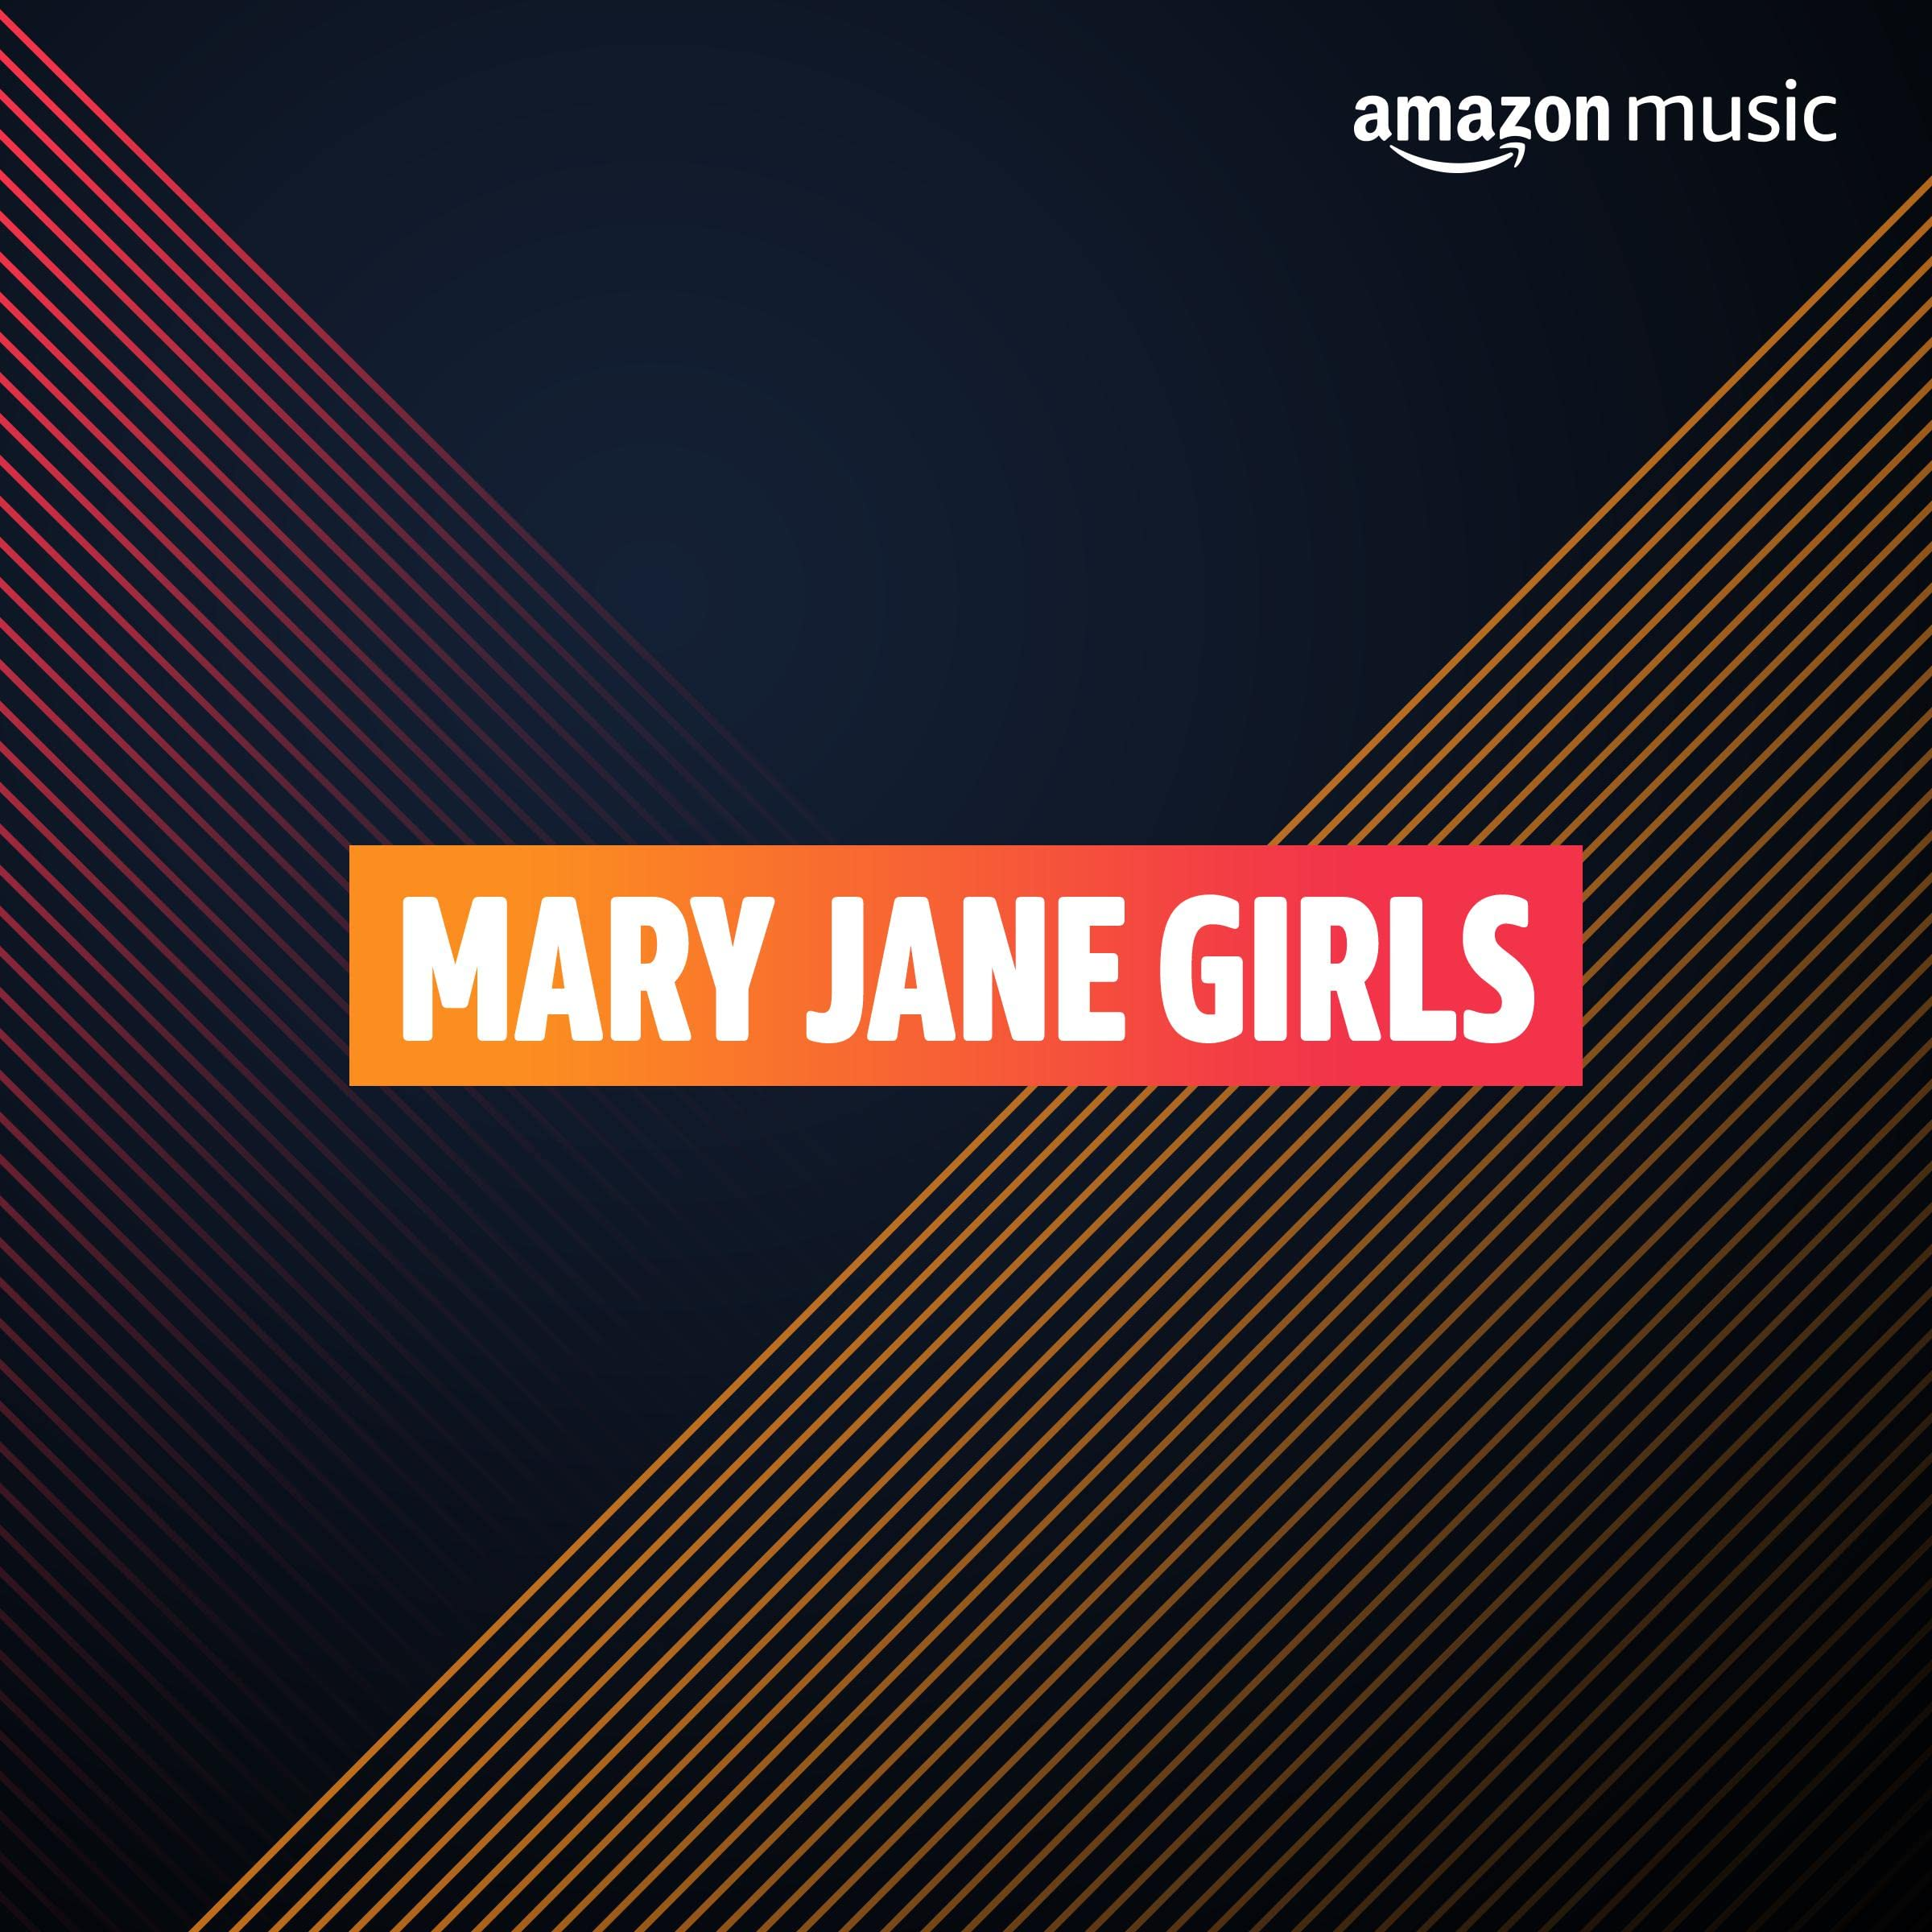 Mary Jane Girls